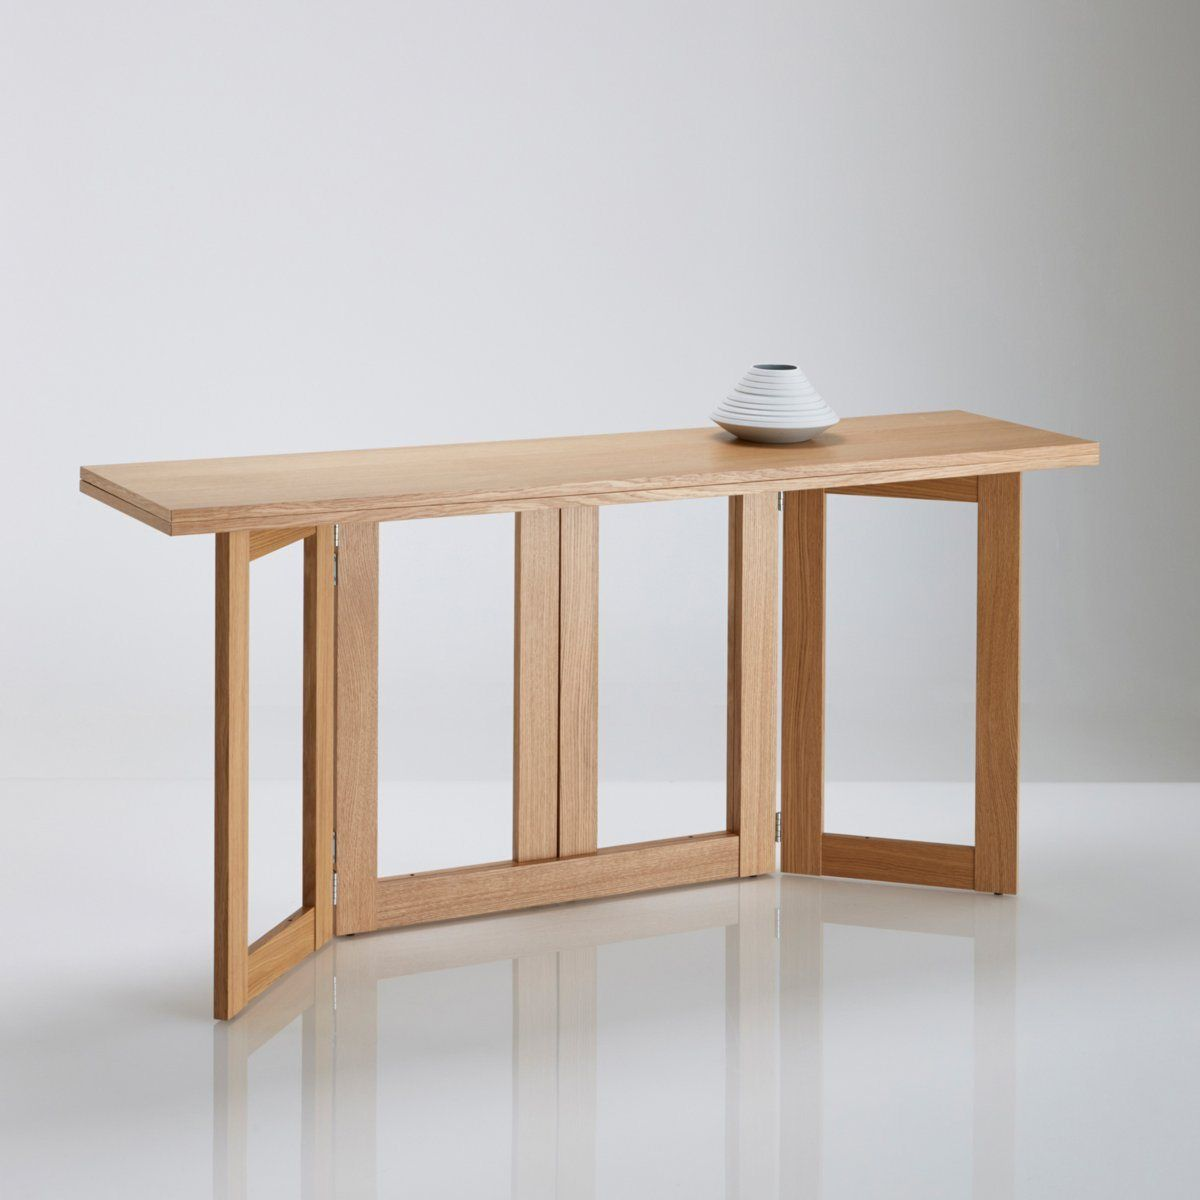 Table console personnes dimensions de la table console for Tablette de cuisine rabattable